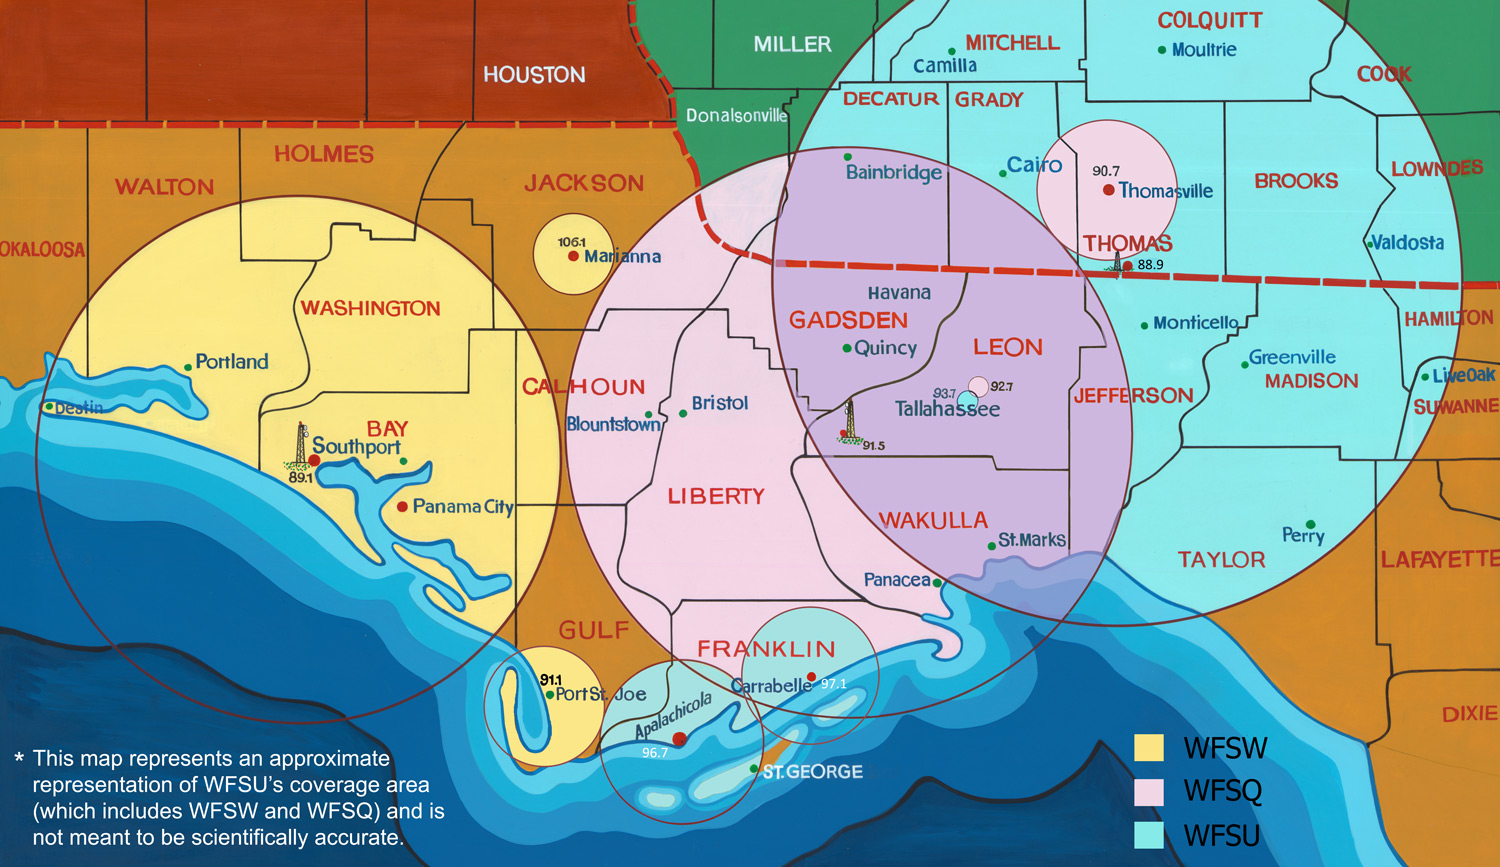 An artist's rendering of the WFSU FM coverage area showing a map of NW Florida with overlaid circles.